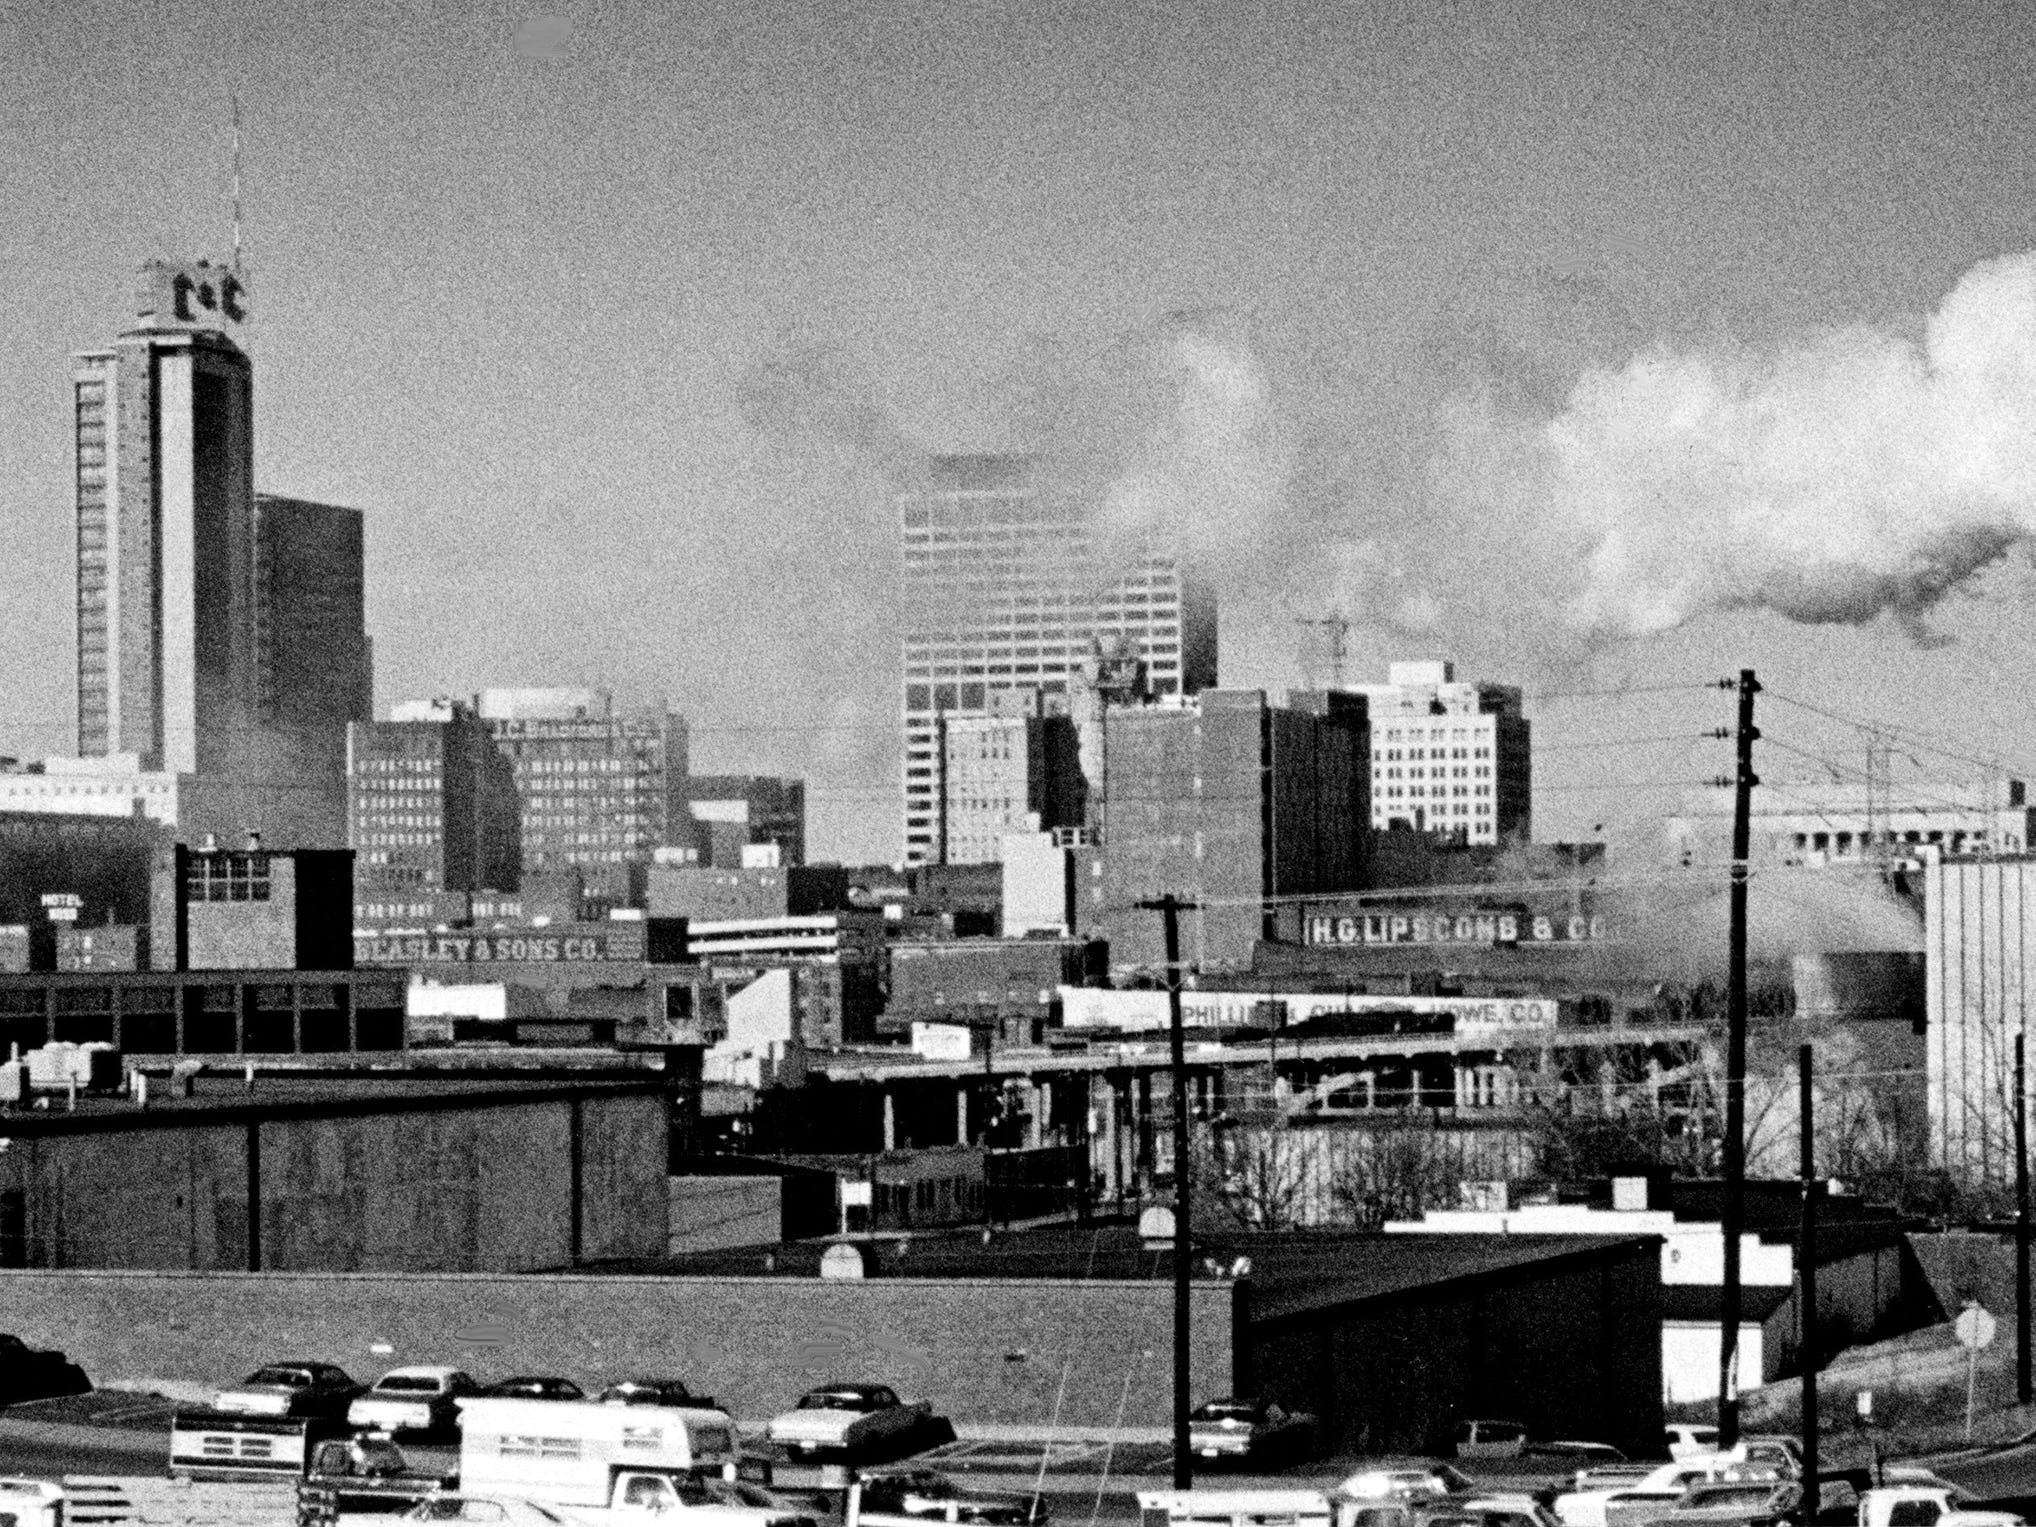 Smoke from the Thermal Transfer, right, blots the Nashville skyline Dec. 1, 1975, which has the L&C Tower and J.C. Bradford building in the center. The J.C. Bradford building was Nashville first skyscraper.